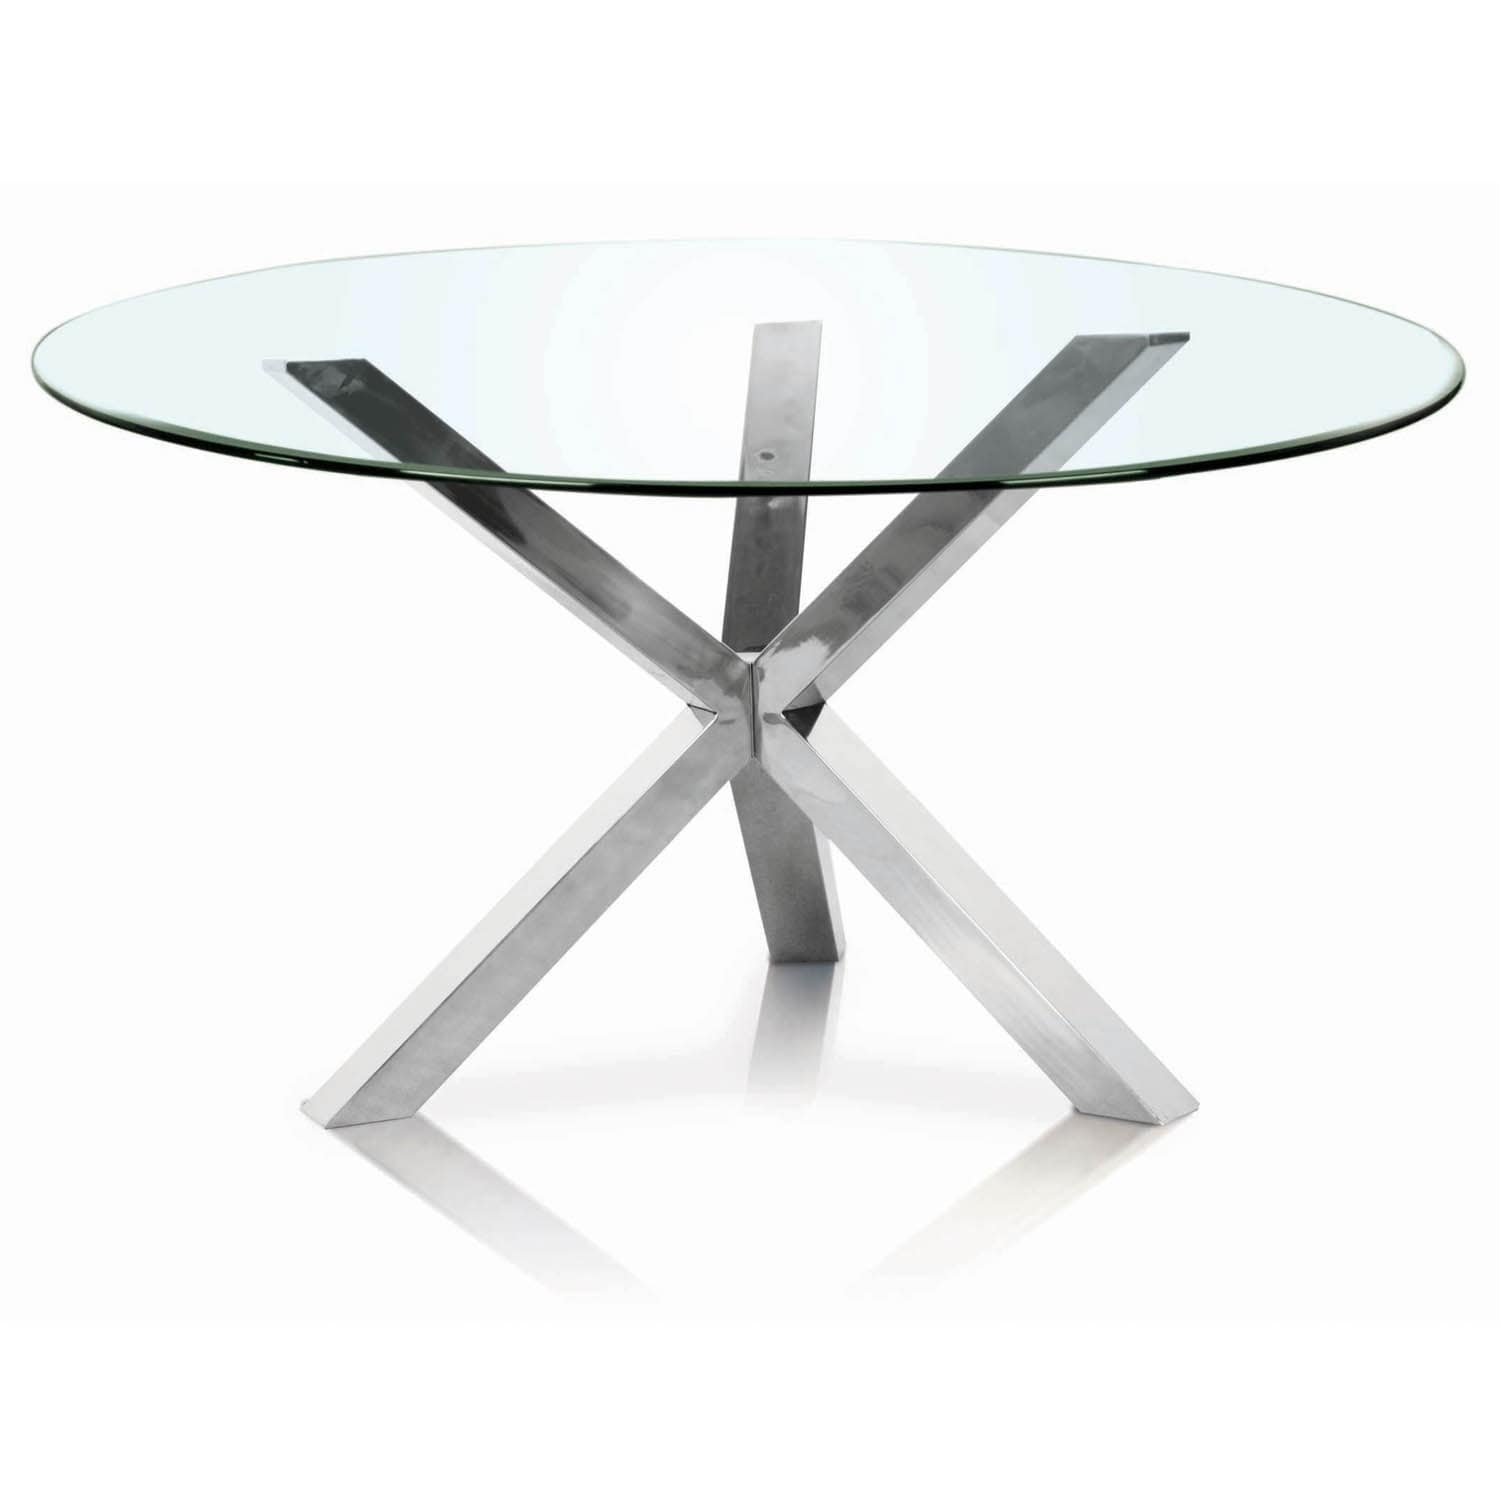 Stainless Steel Round Dining Table Base